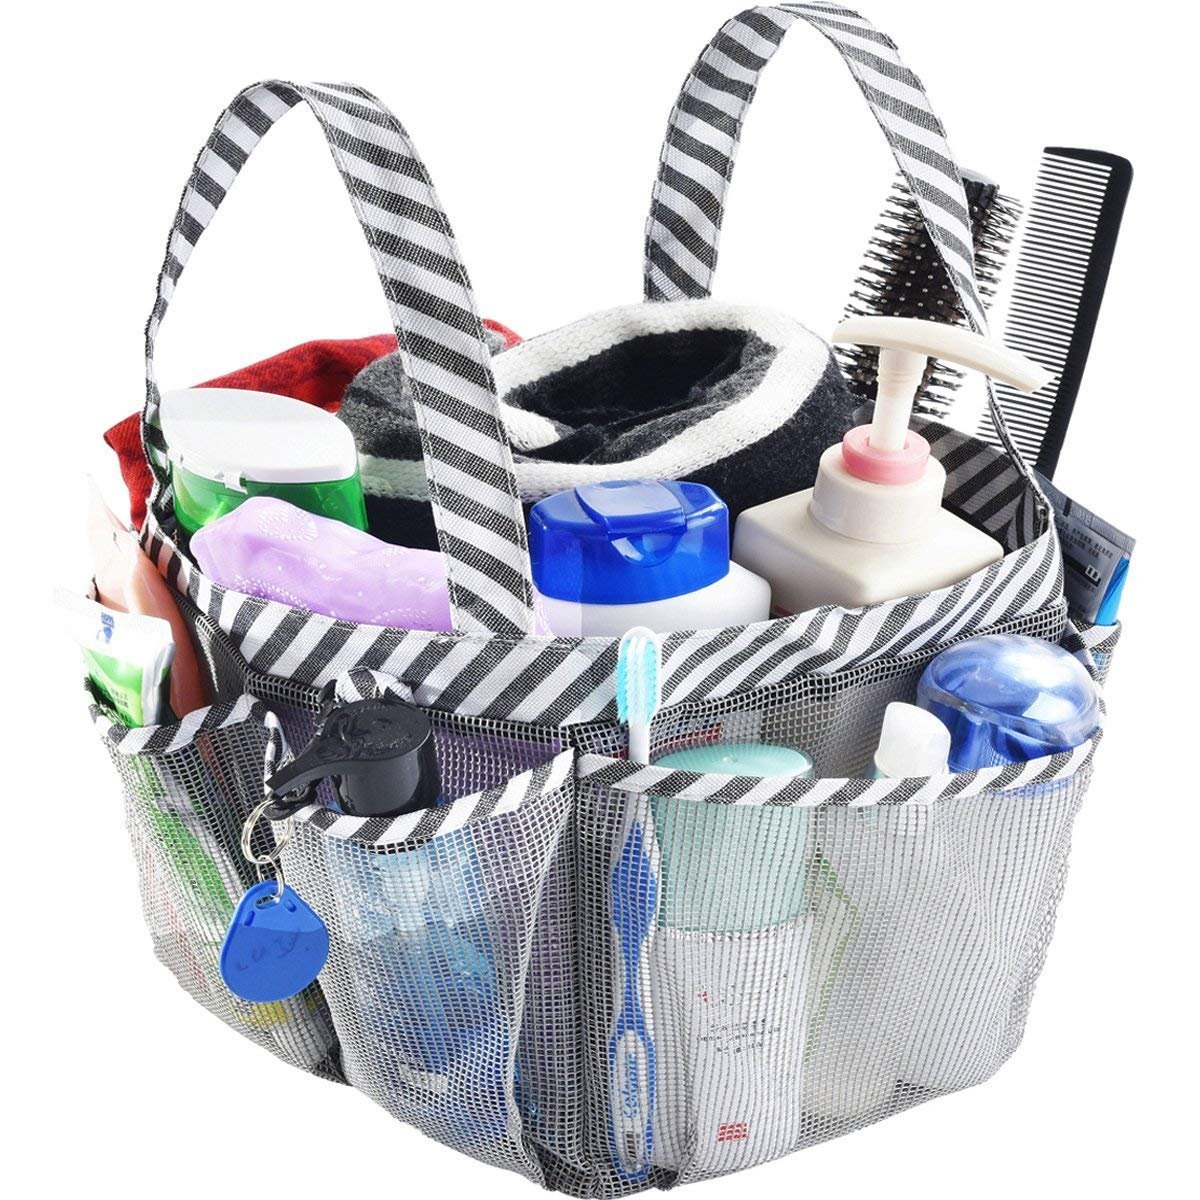 Mesh Shower Caddy Tote, Portable College Dorm Bathroom Tote with Key ...